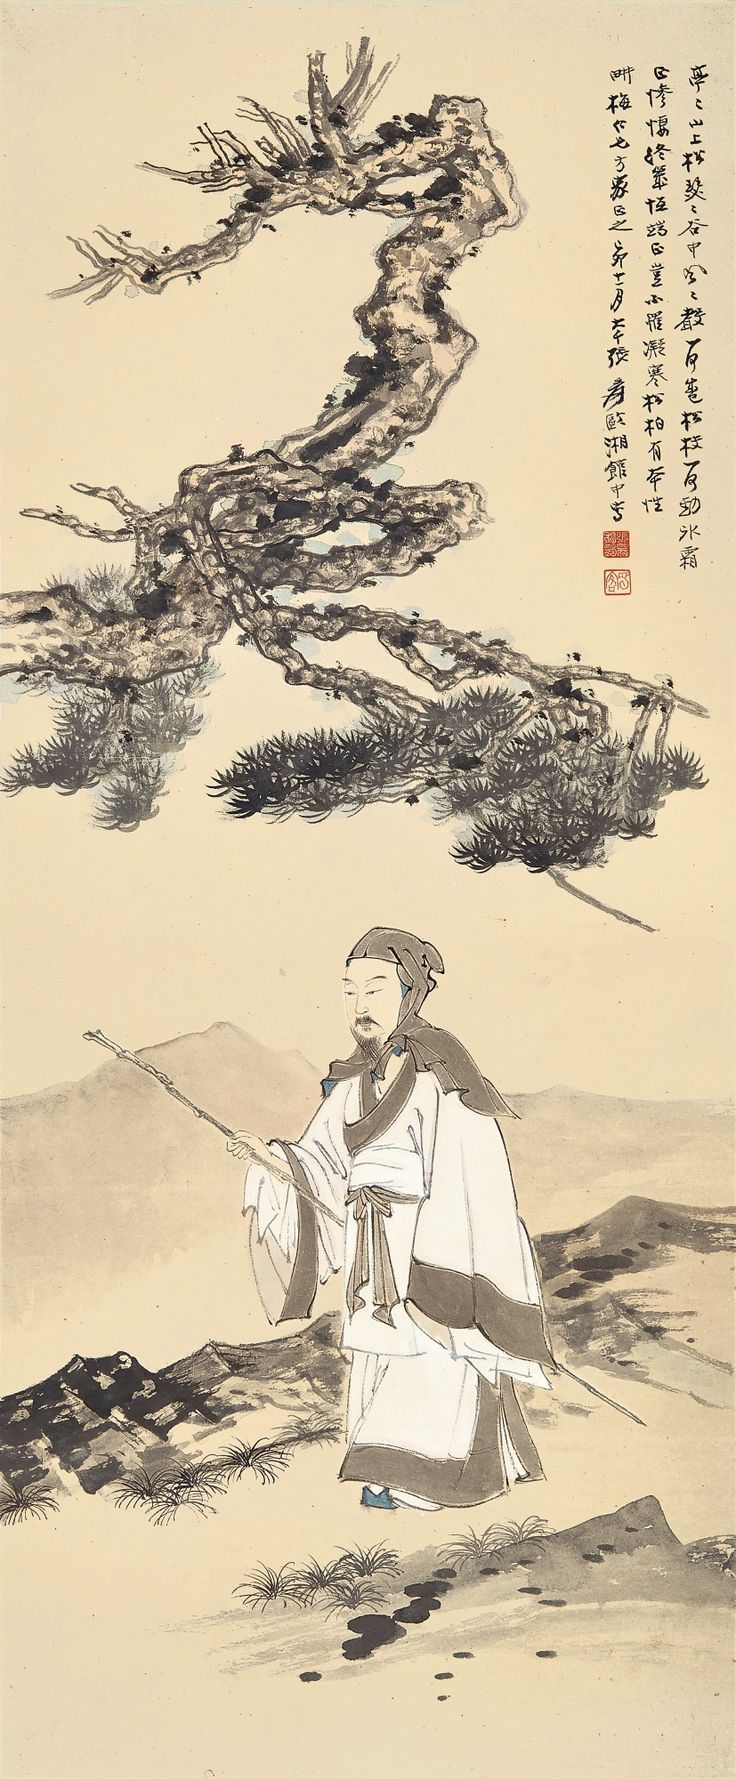 an analysis of the skill by chang dai chien on the topic of chinese historical artists From chemistry to computer programming, arts to world war ii, thoughtcocom provides guides, tips, and resources to help you understand more about the world around us.